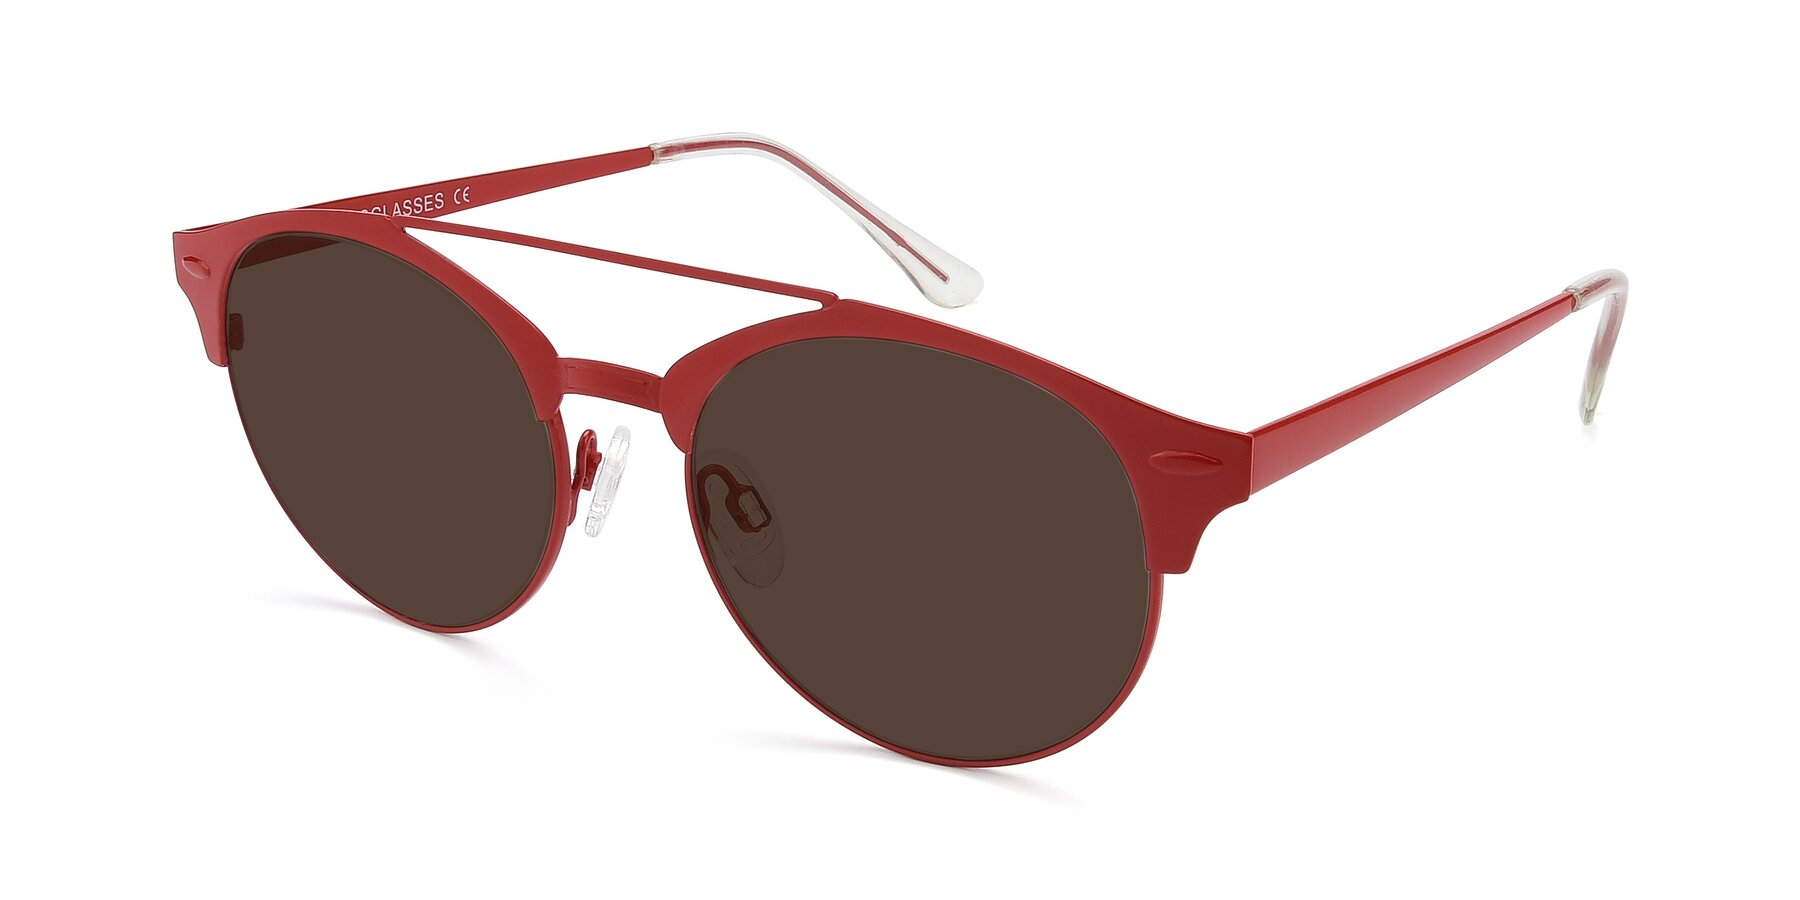 Angle of SSR183 in Red with Brown Tinted Lenses